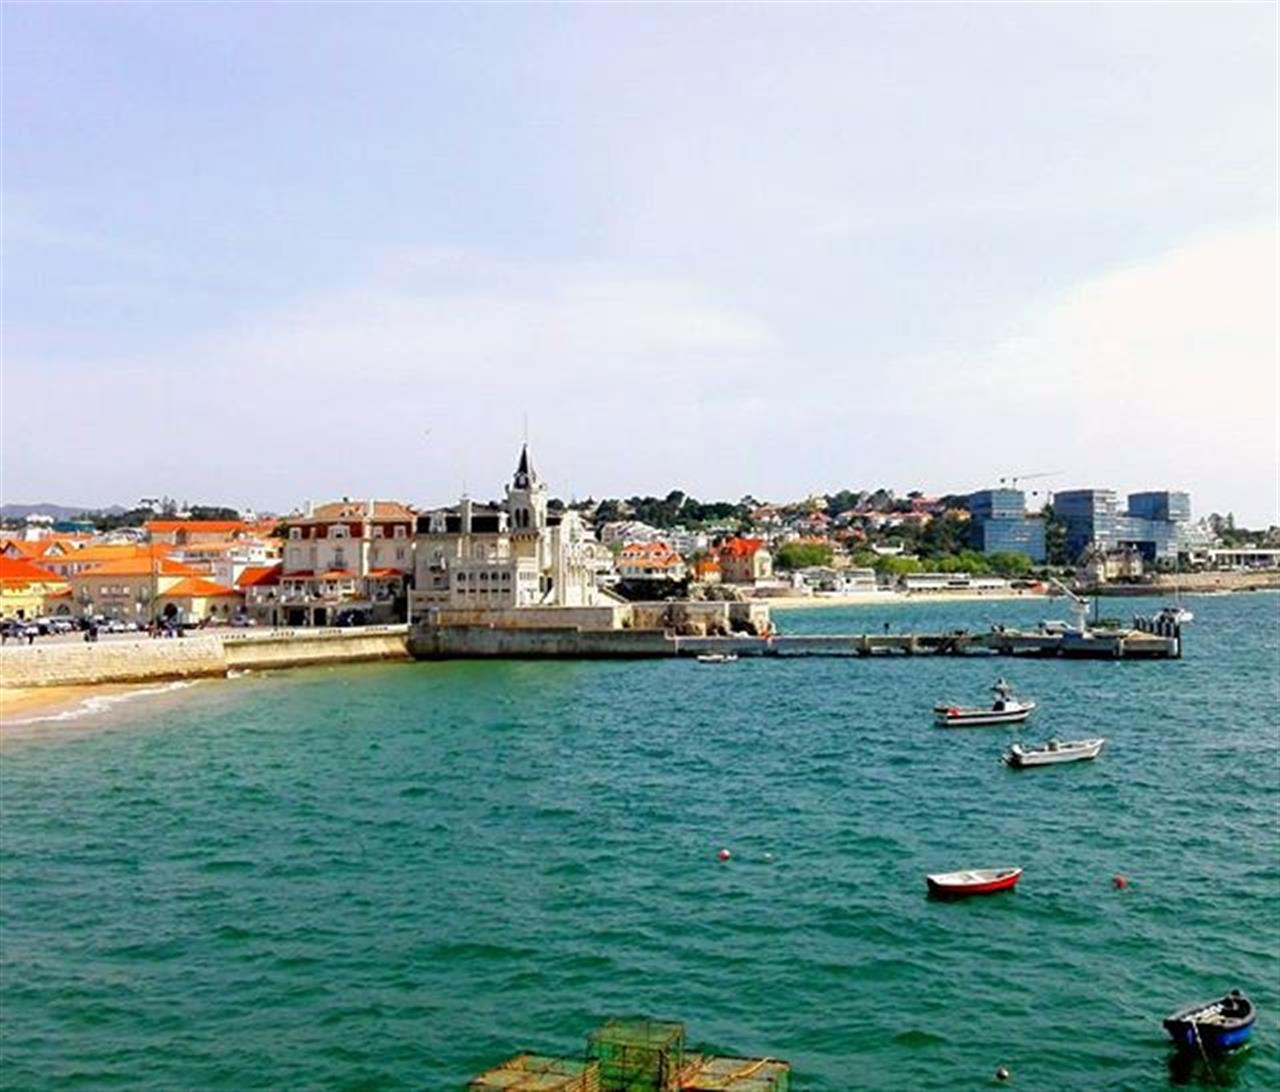 #cascais #leadingrelocal #insportugalrealestate